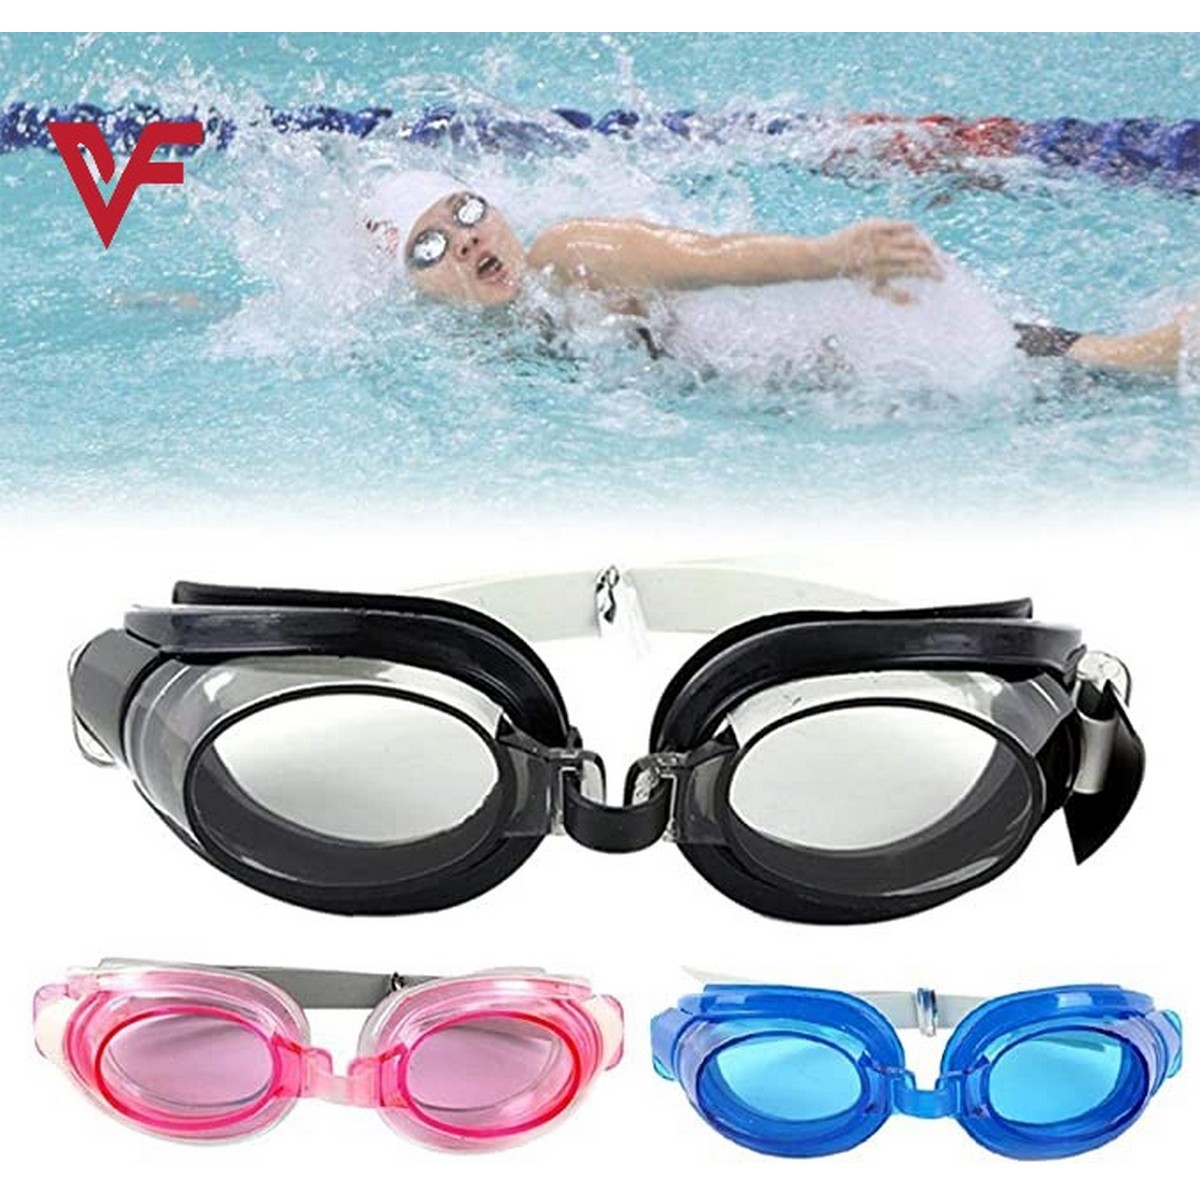 Professional 3 in 1 Swimming Goggles Anti-fog Swimming Water Pool Glasses Unisex Adjustable Swim Glasses Eyewear Waterproof Anti-fog Glasses Nose Clip Ear Plug Set No Leaking Anti Fog Uv Protection For Adult Men Women Youth Kids Child Swiming Accessories